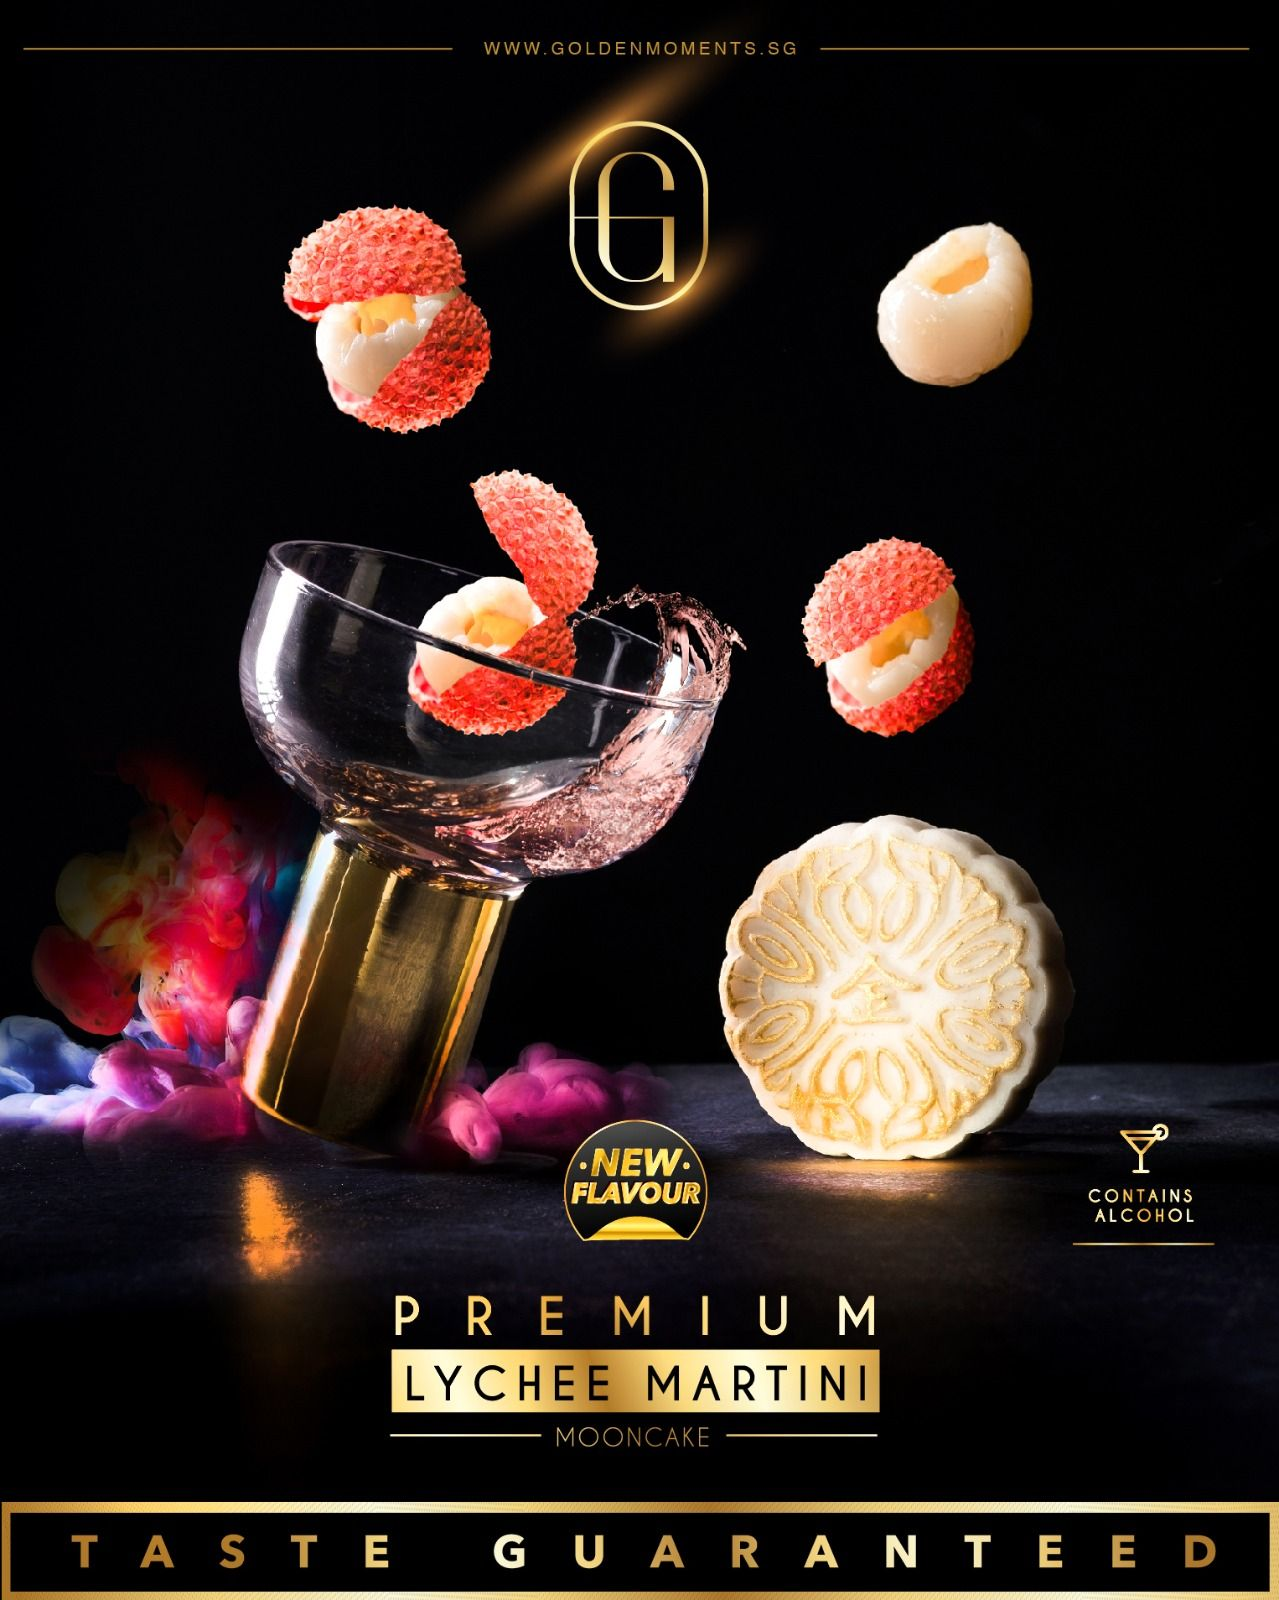 Single Piece Premium Lychee Martini Snowskin Mooncake (1 Piece Only)